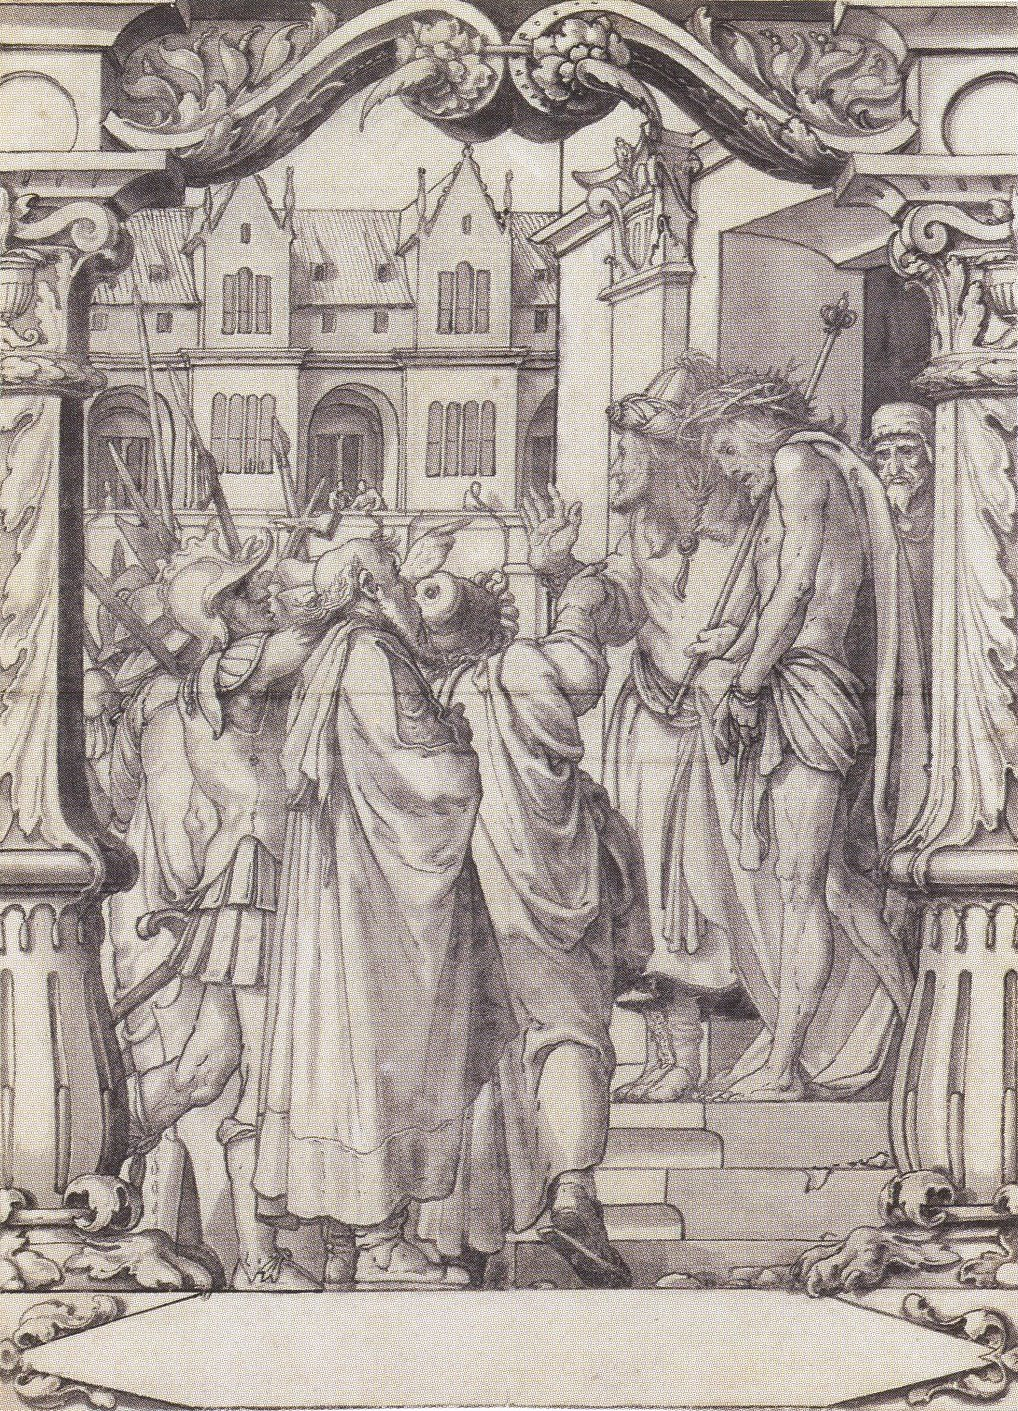 Ecce Homo, design for a stained glass window. c.1528